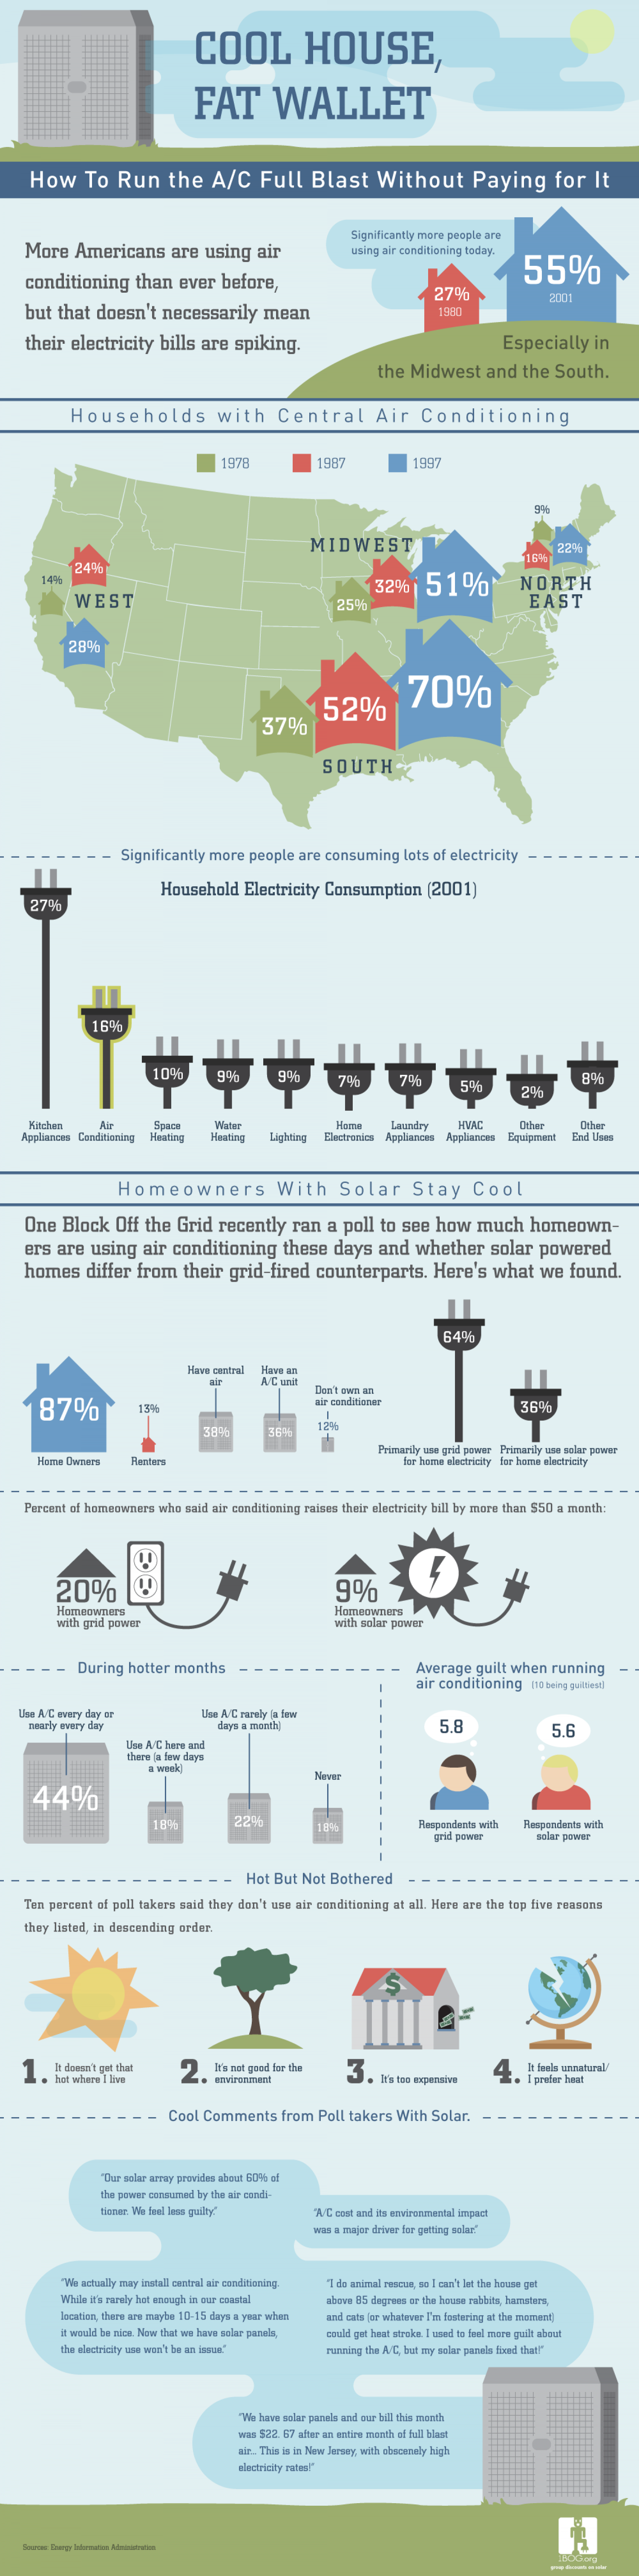 Cool House, Fat Wallet Infographic